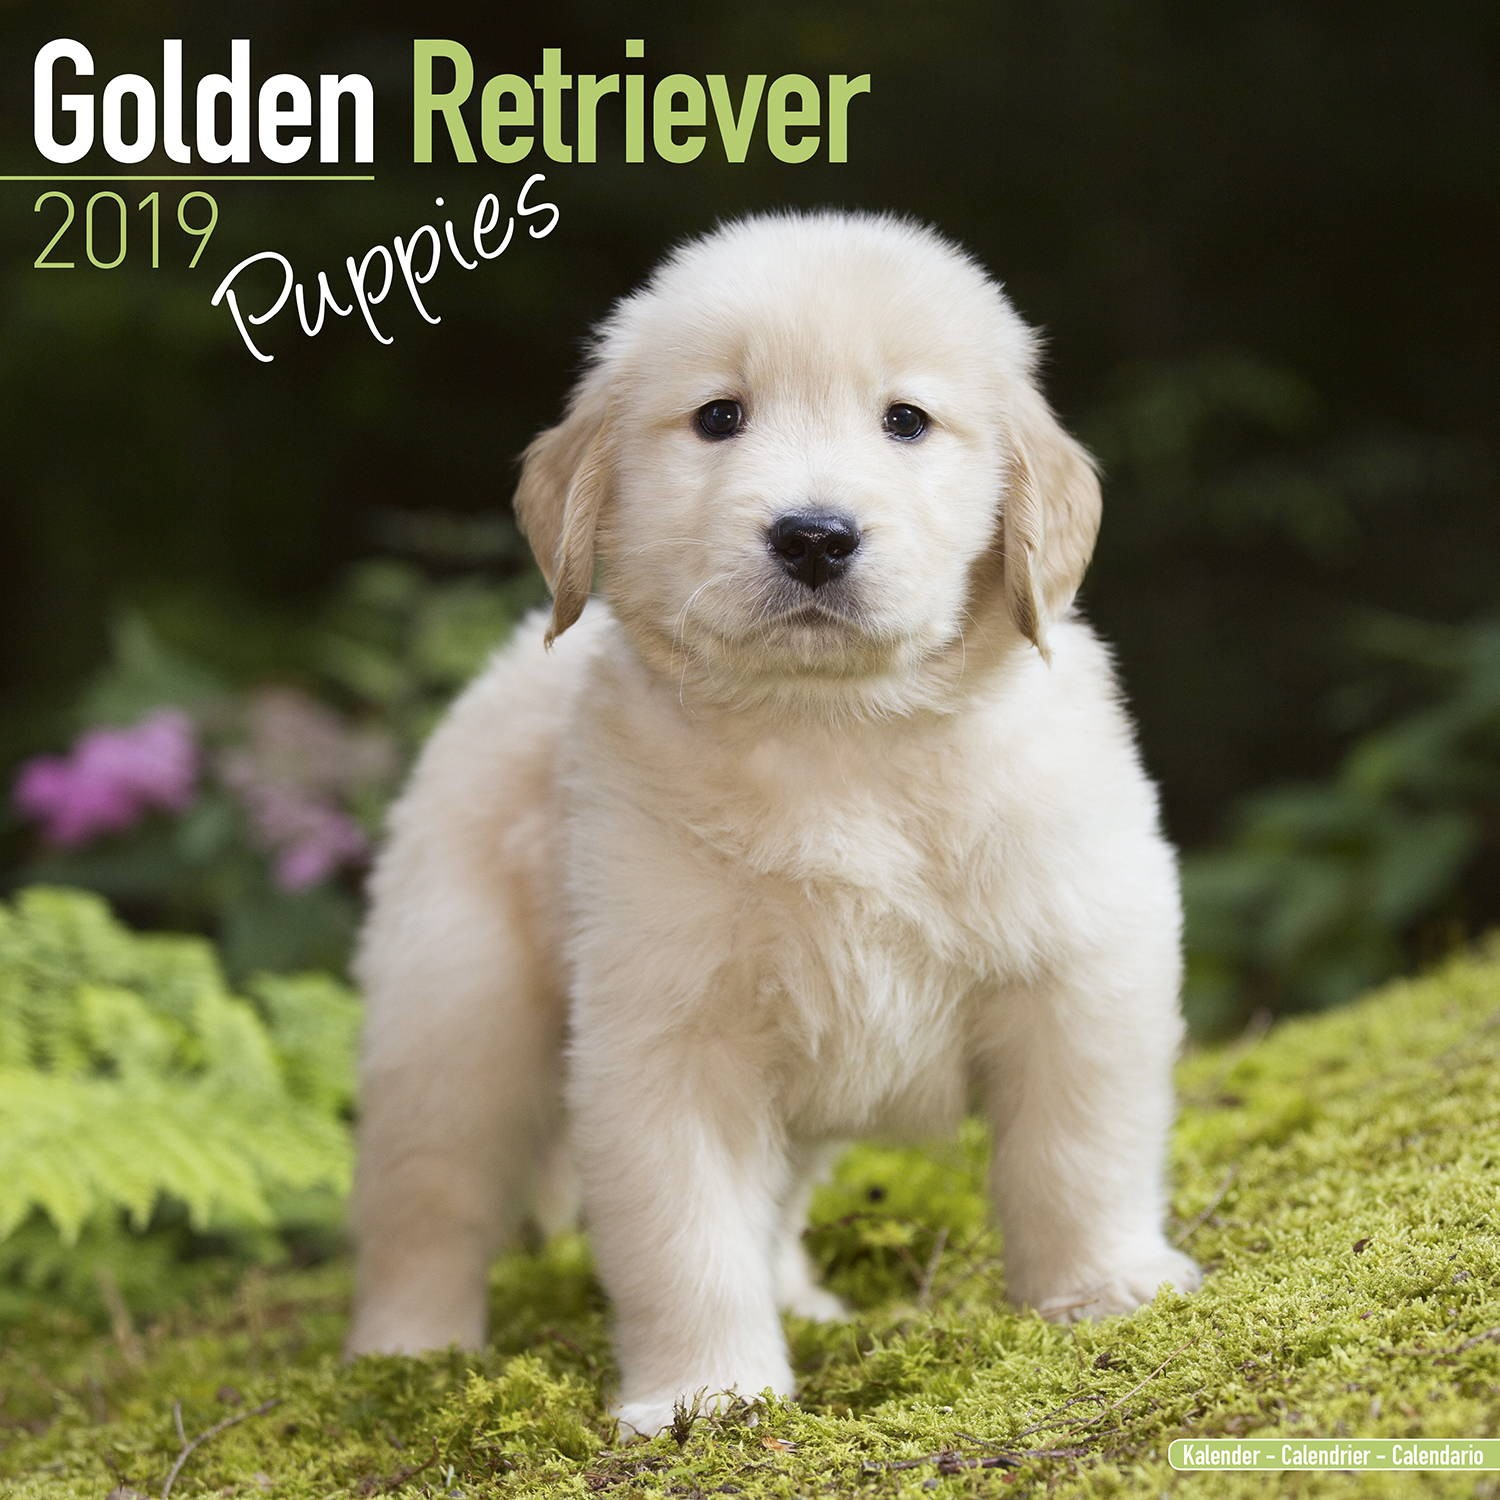 Golden Retriever Puppies Wall Calendar 2019